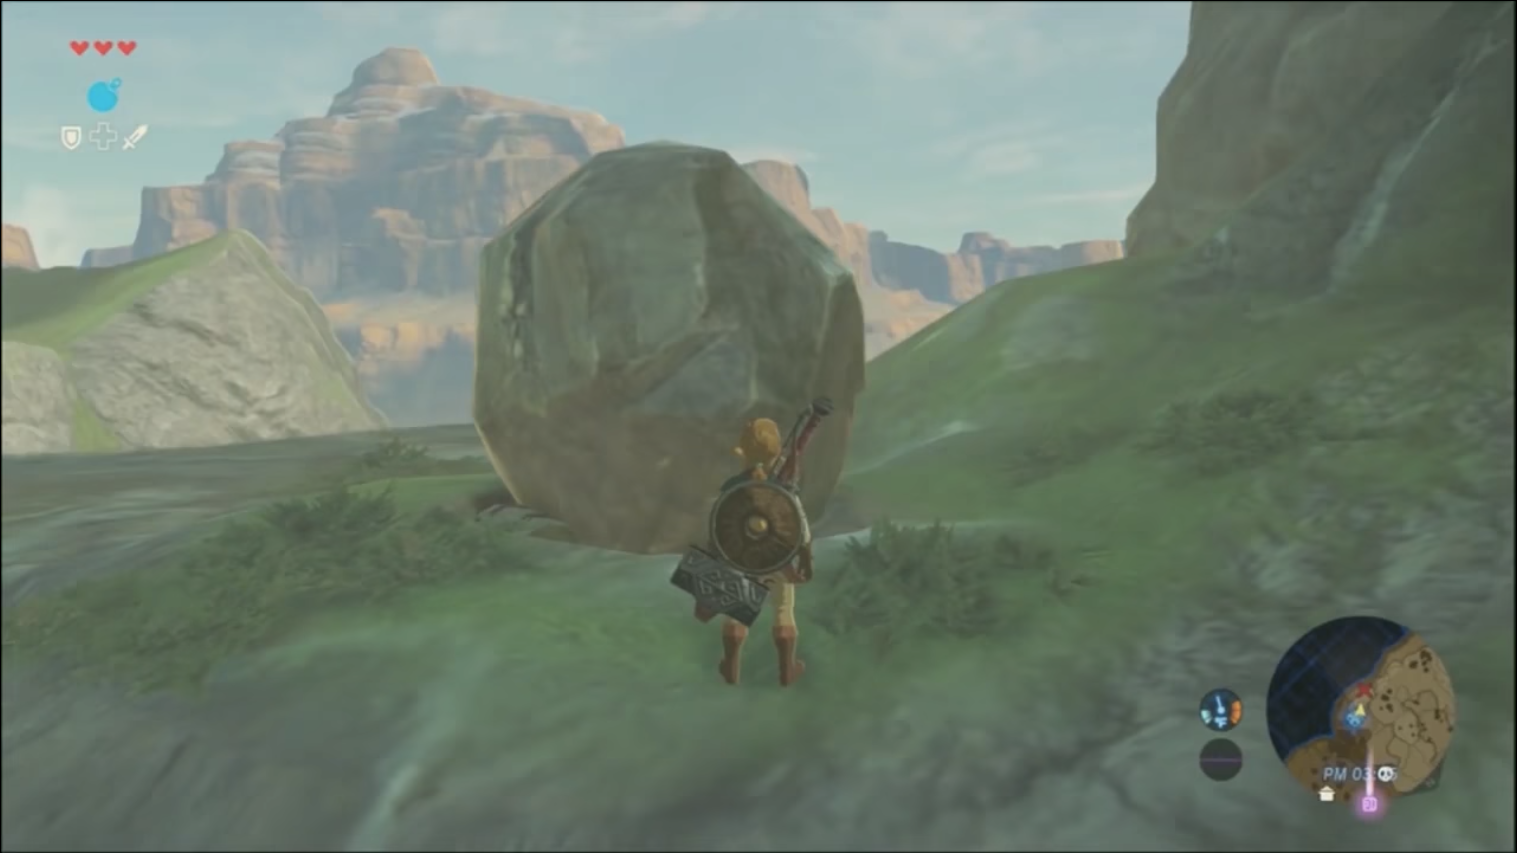 Breath of the Wild players get creative with fast travel